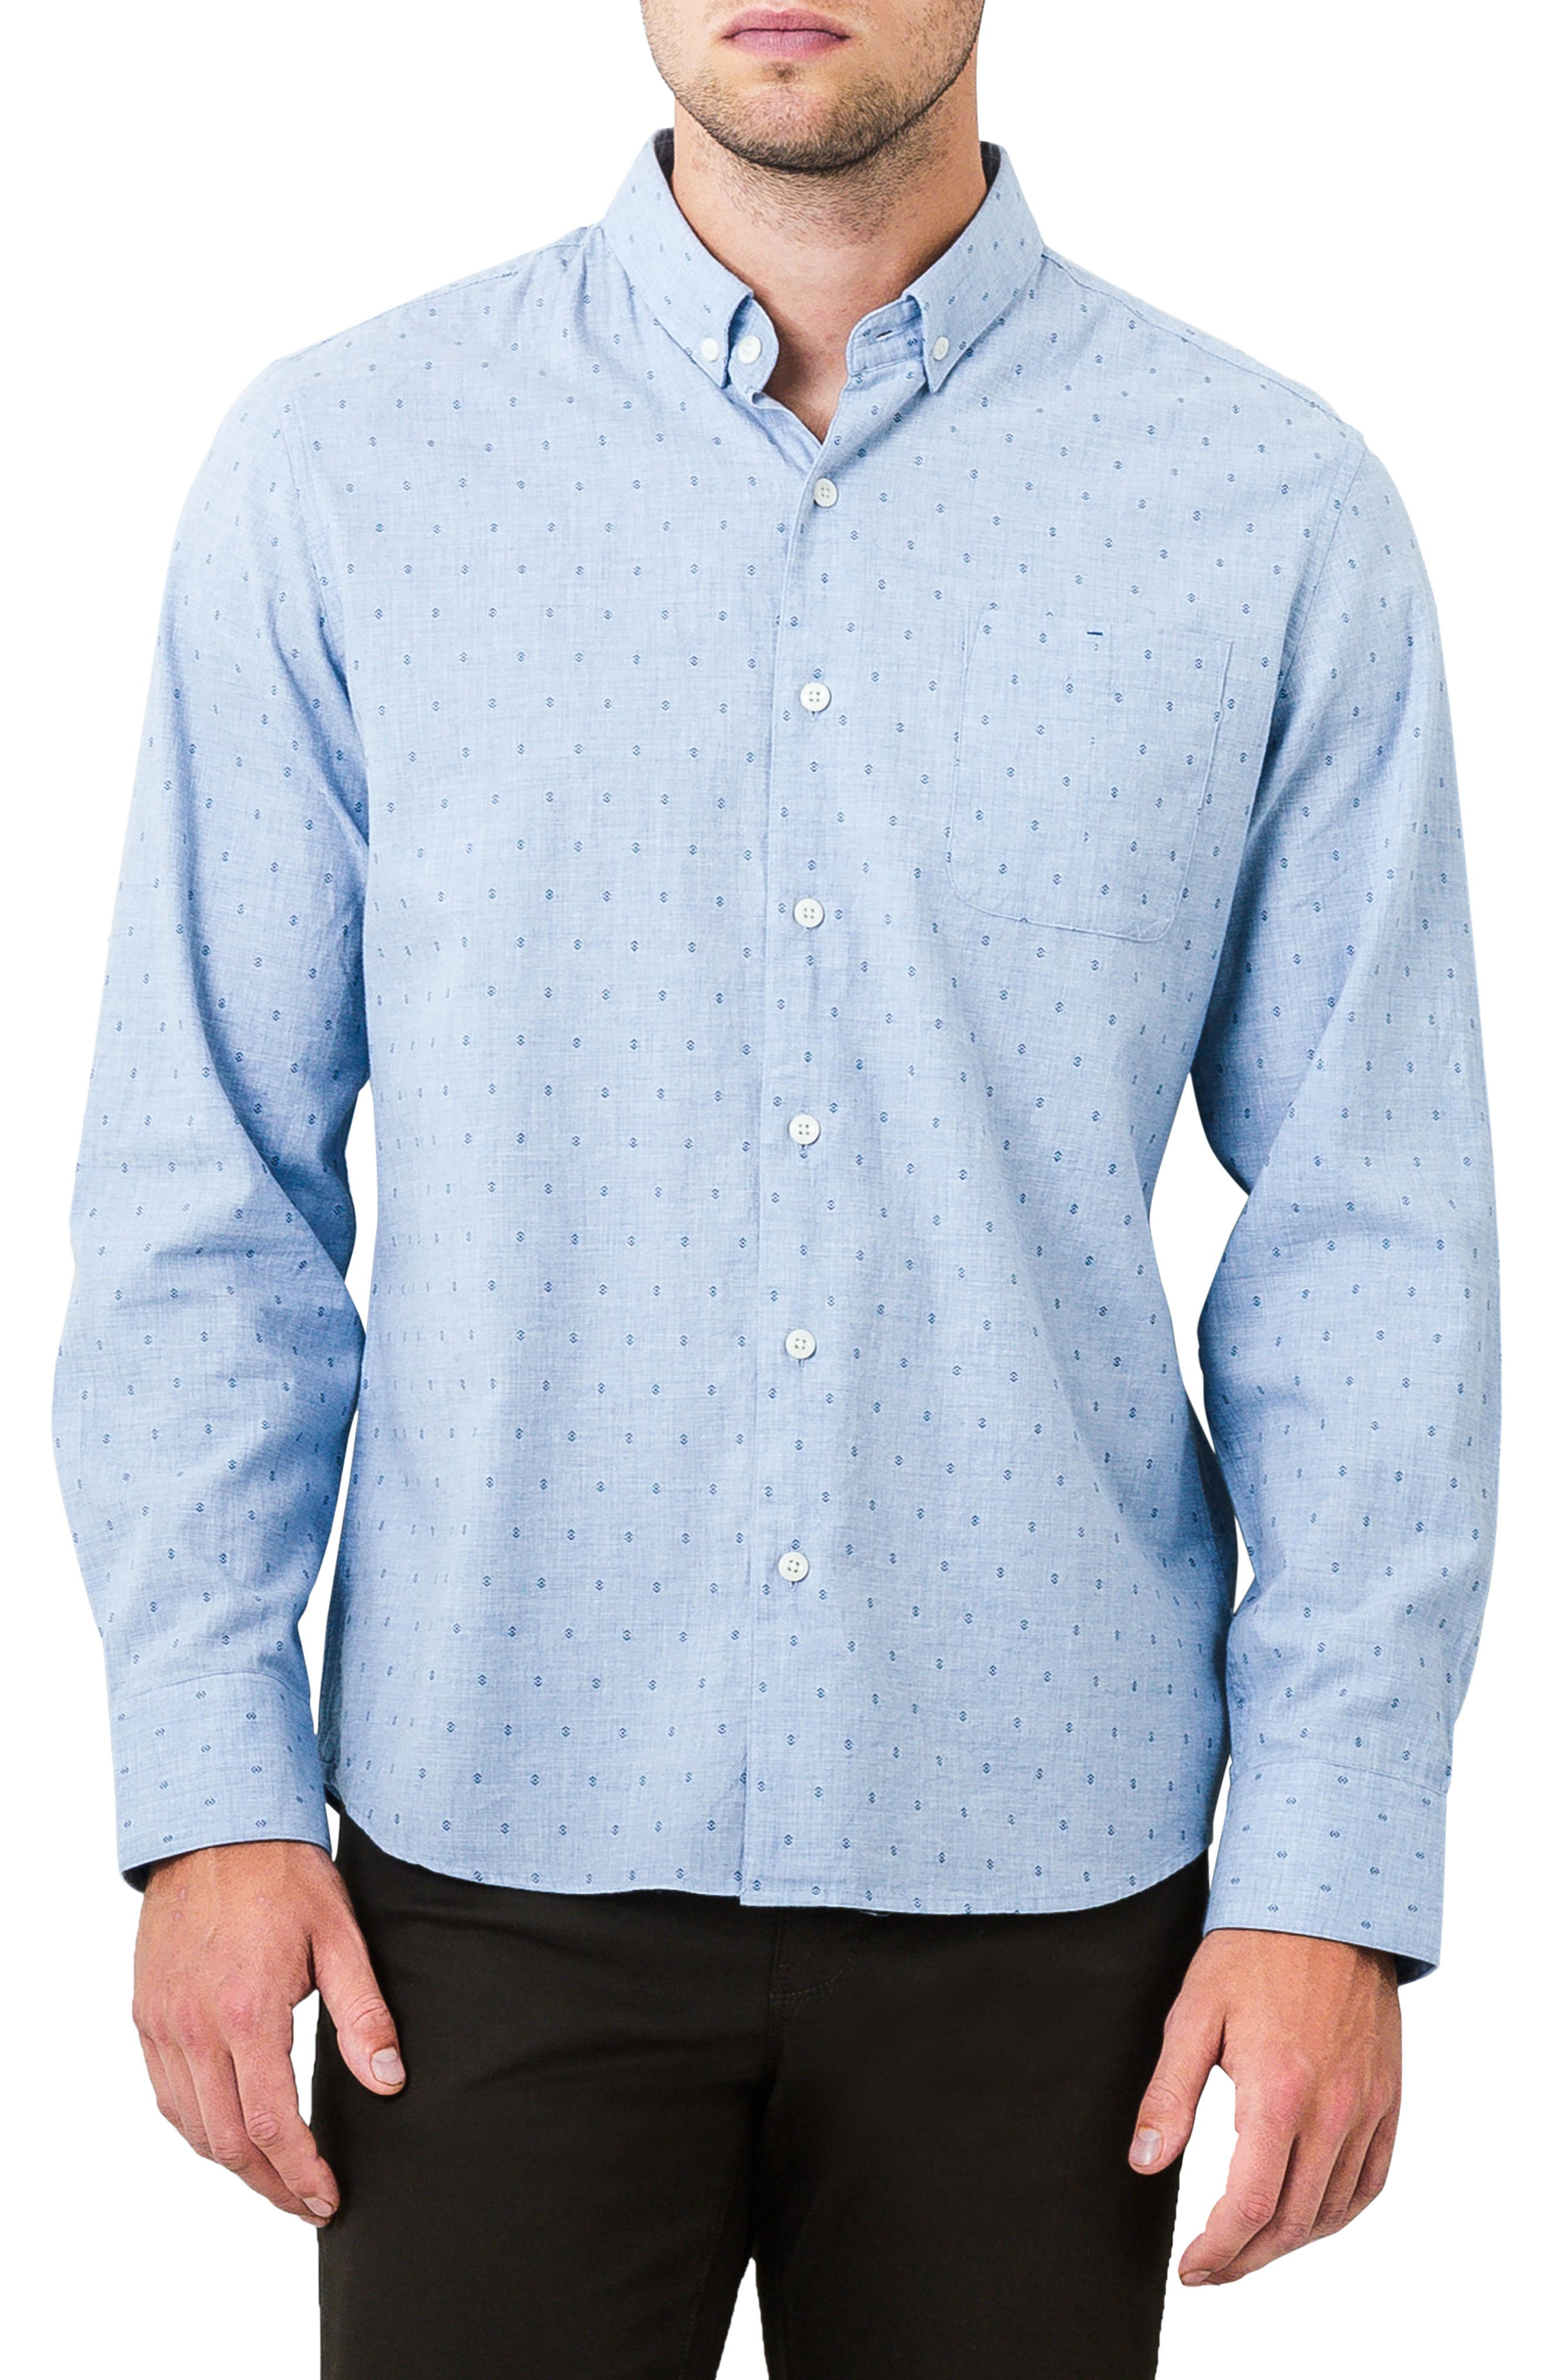 First Light Woven Shirt,                         Main,                         color, Light Blue